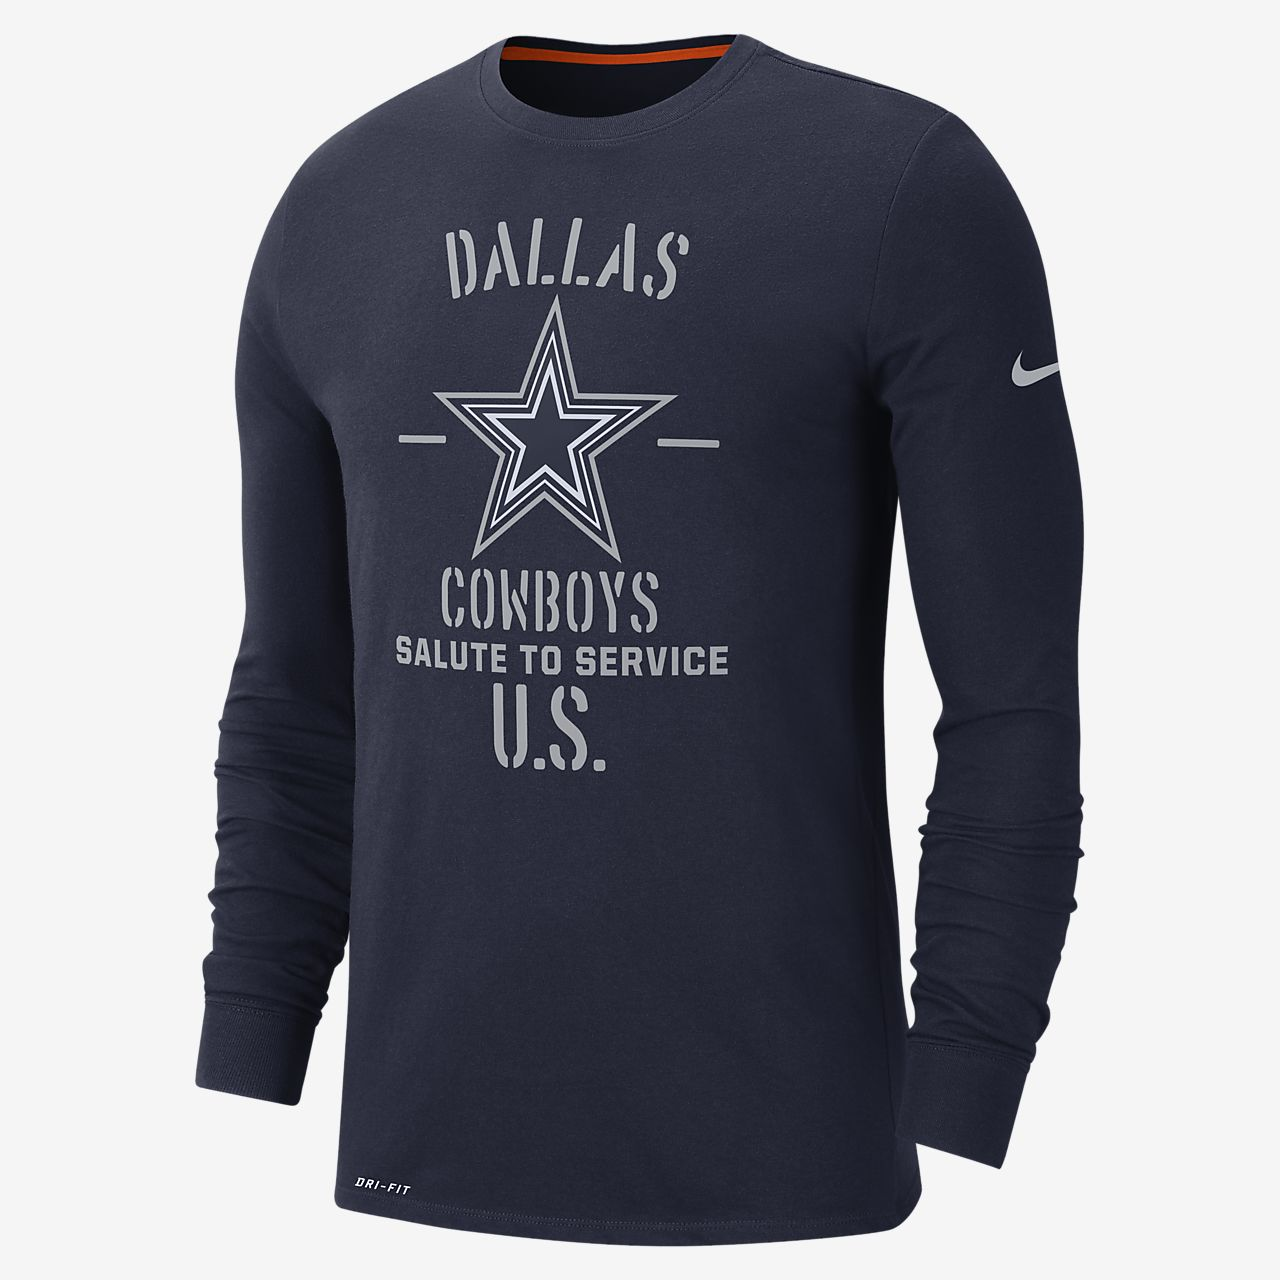 NFL Cowboys) Men's Long-Sleeve T-Shirt